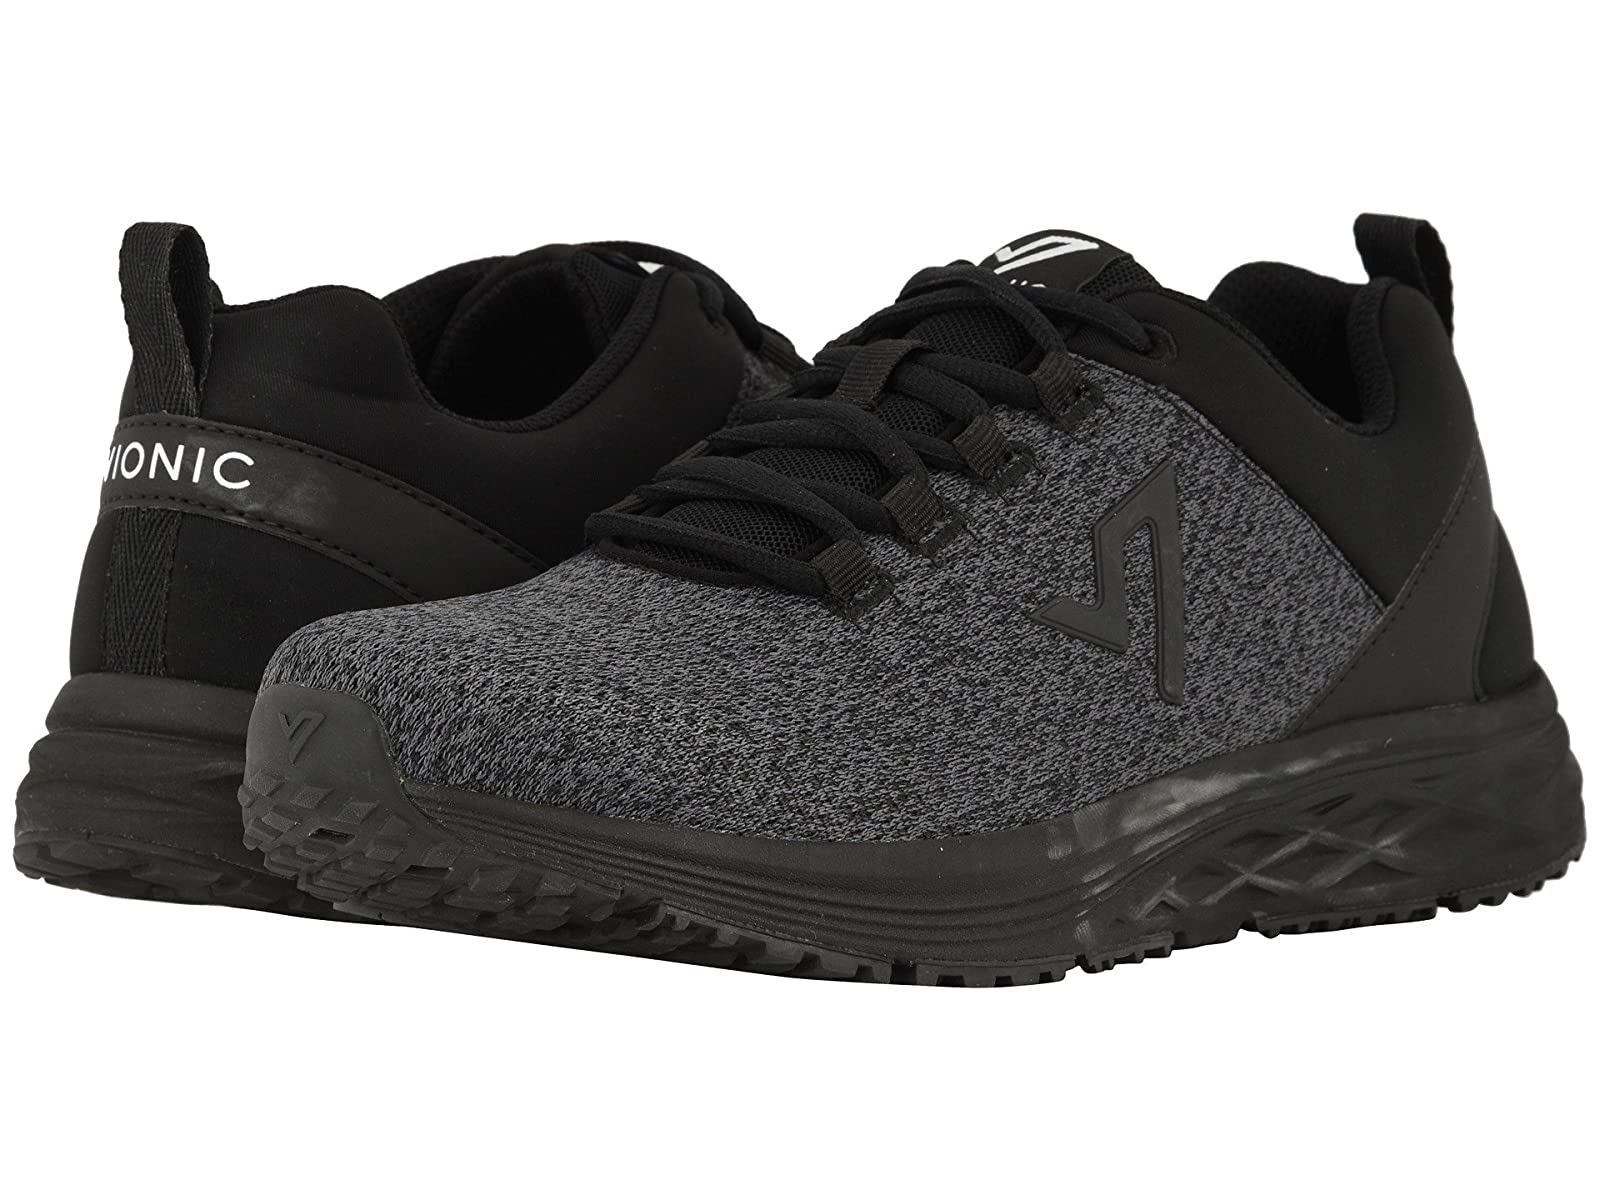 VIONIC TurnerAtmospheric grades have affordable shoes